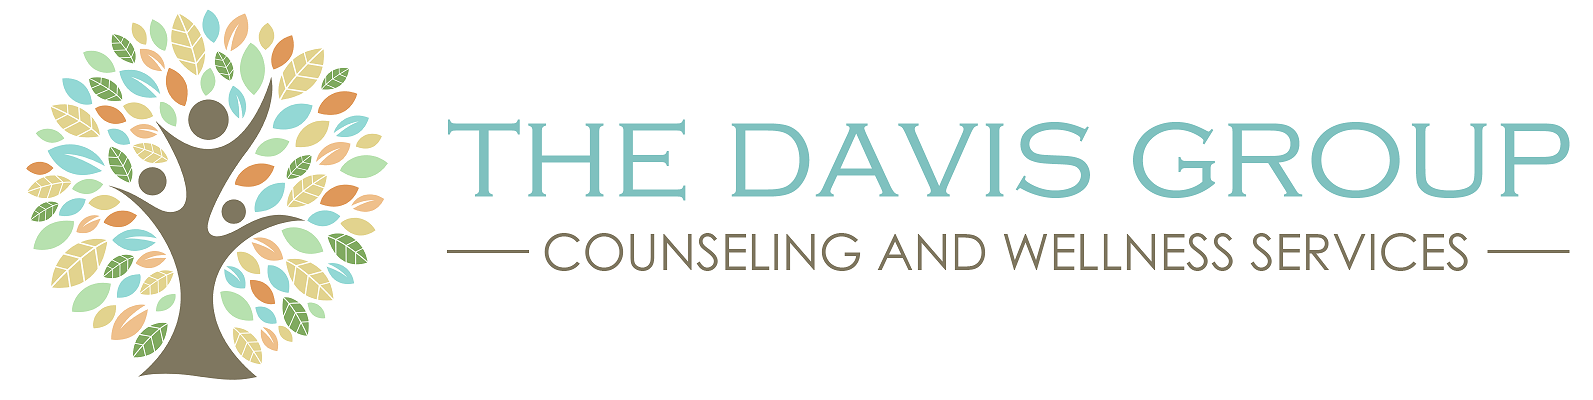 The Davis Group | Individual, Marriage & Family Counseling in Roseville, CA